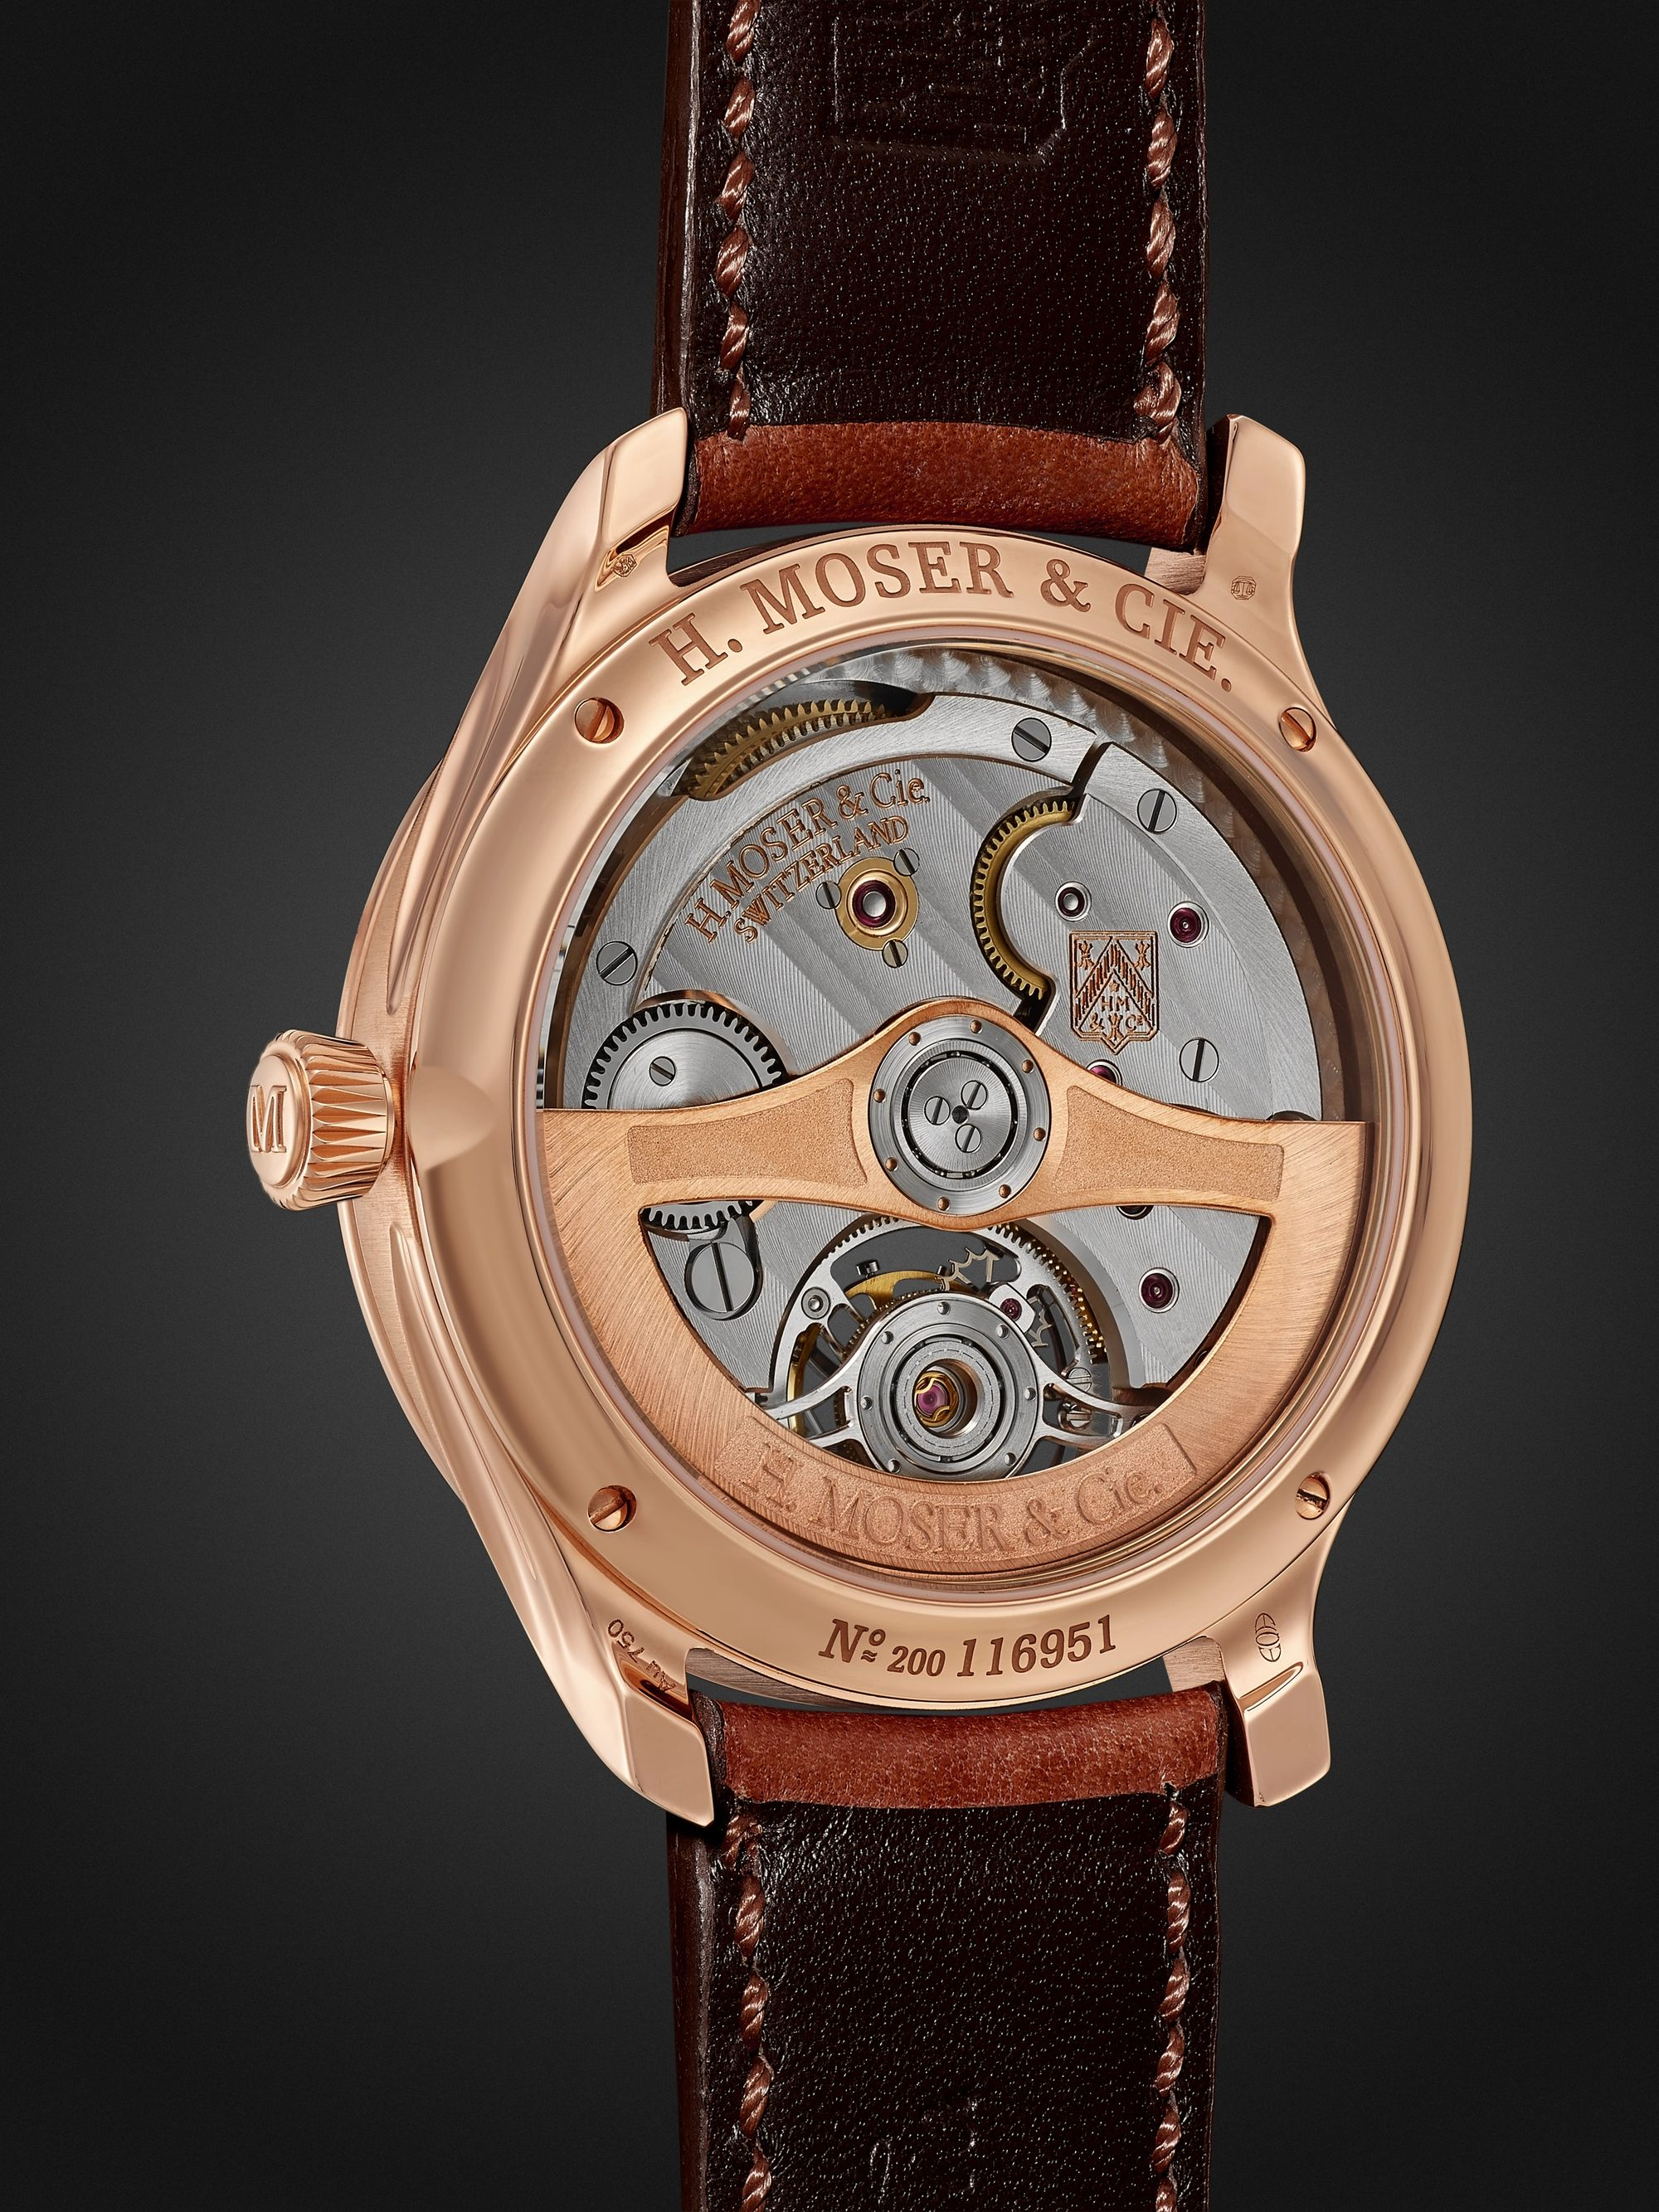 H. MOSER & CIE. Endeavour Tourbillion Automatic 40mm 18-Karat Red Gold and Leather Watch, Ref. No. 1804-0401